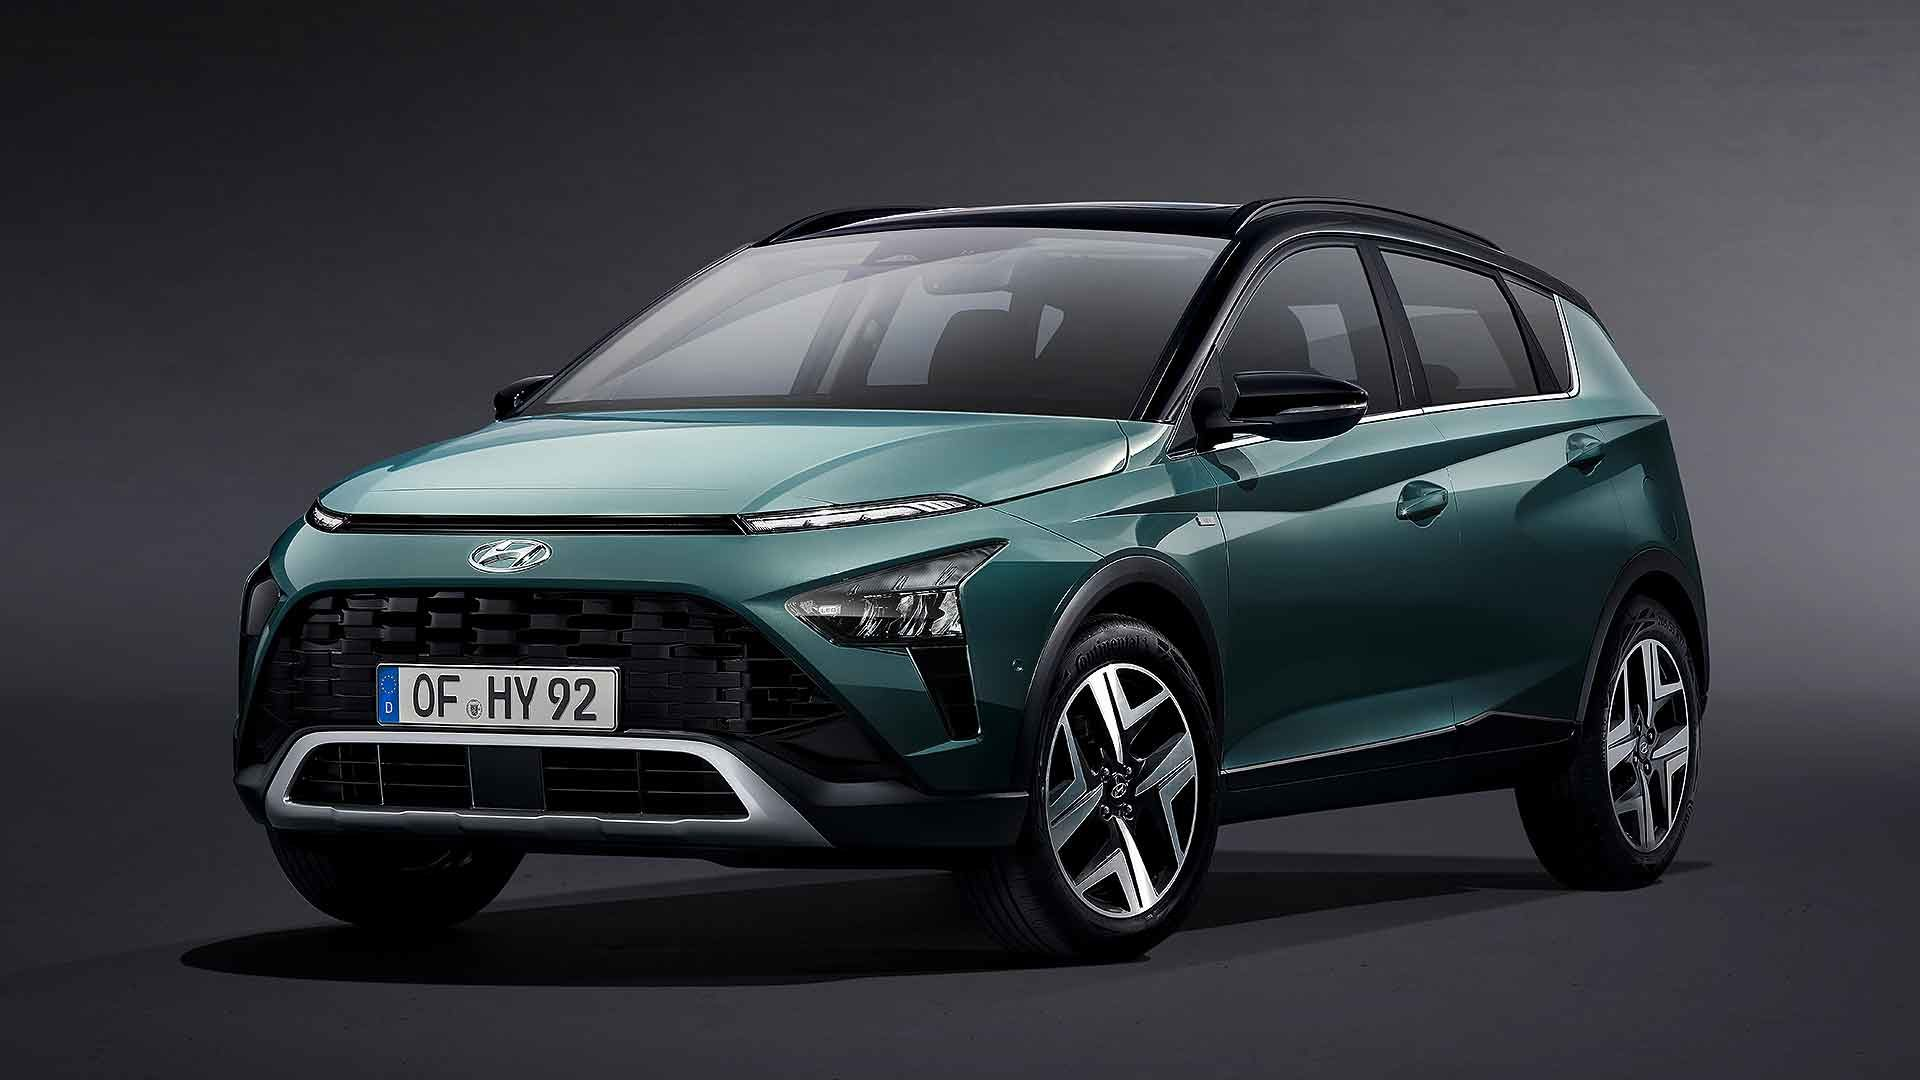 New Hyundai Bayon small SUV revealed